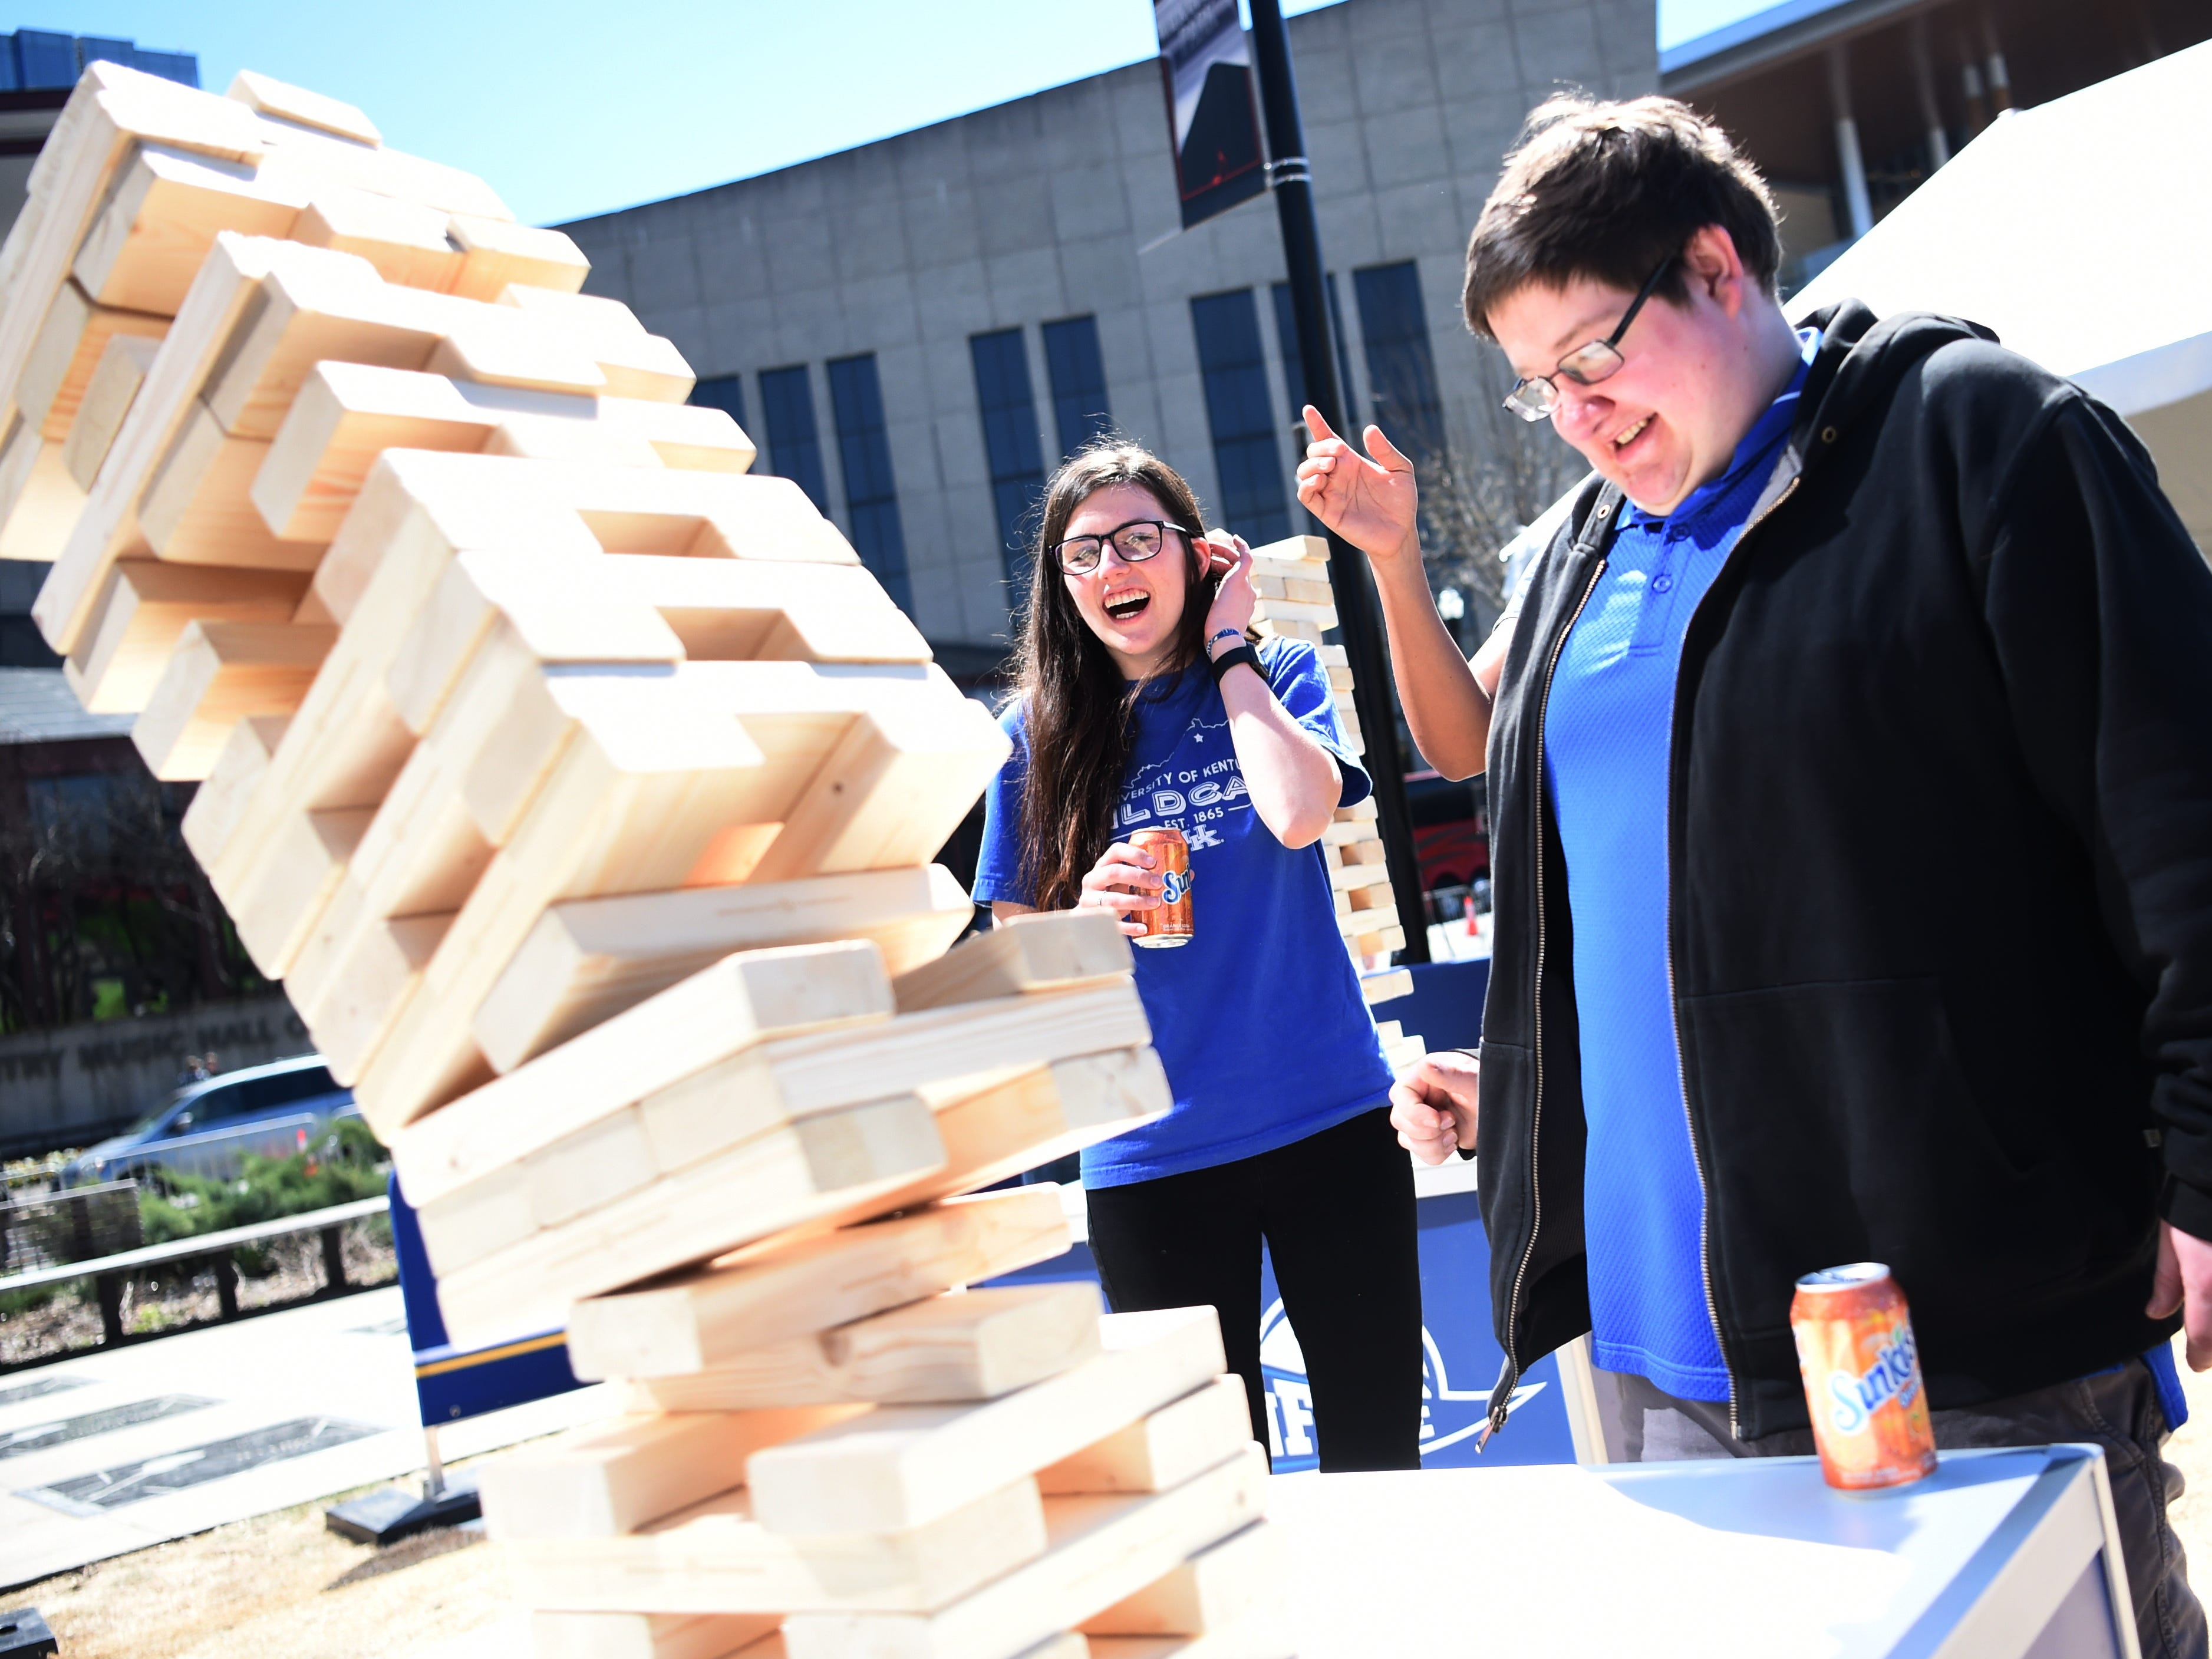 Kentucky students Stephanie Brown and Joe Willis play Jenga before the SEC Men's Basketball Tournament game against Tennessee at Bridgestone Arena in Nashville, Tenn., Saturday, March 16, 2019.